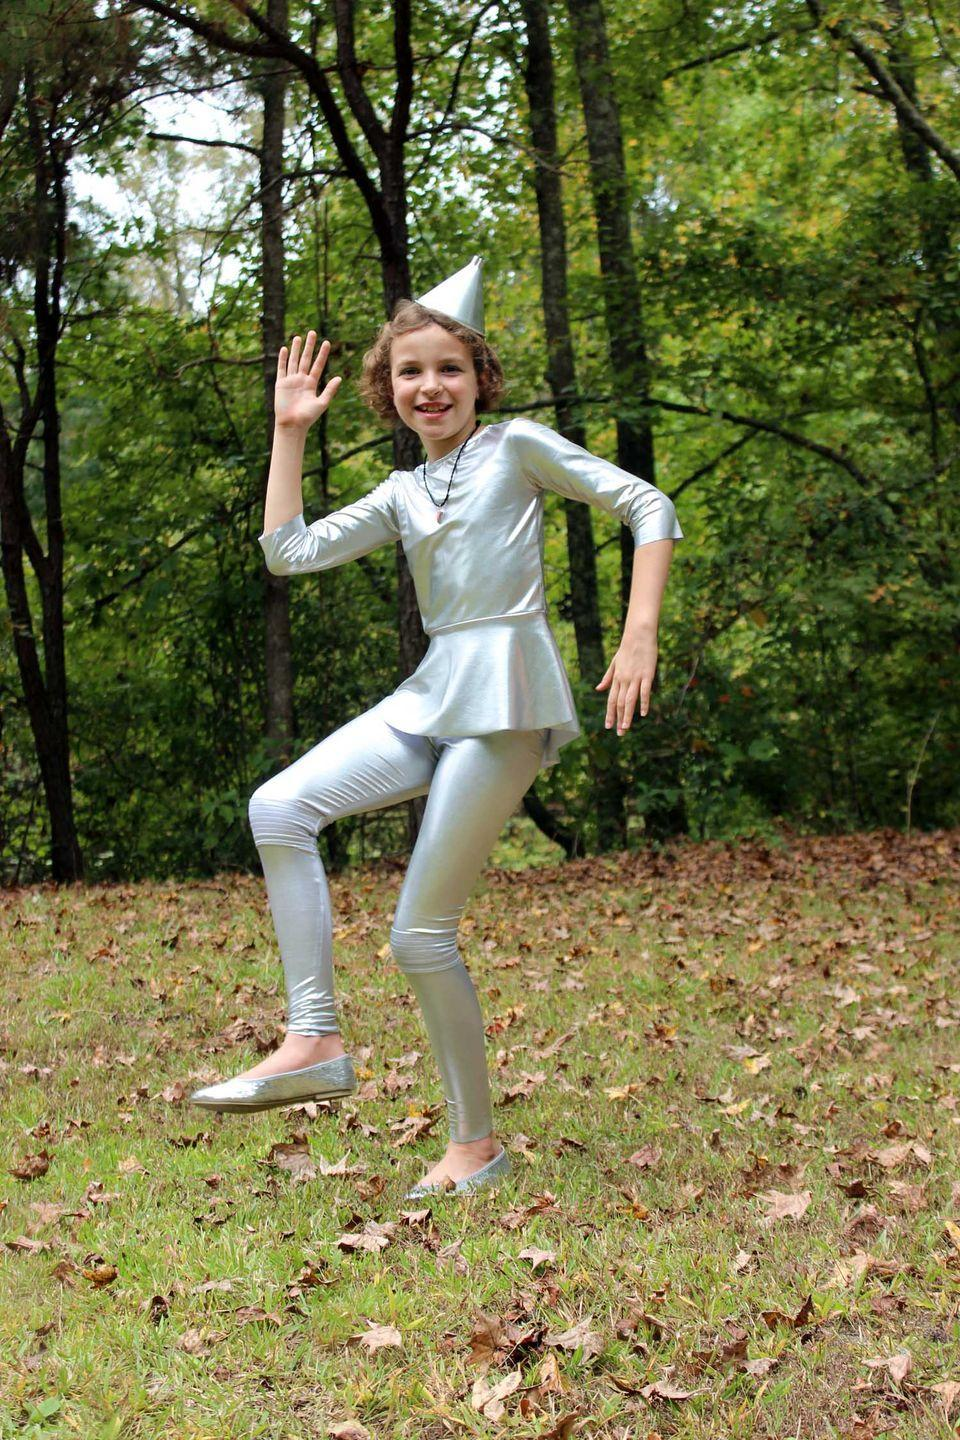 """<p>Though this blogger includes instructions for sewing a <a href=""""https://www.countryliving.com/diy-crafts/g22105023/wizard-of-oz-diy-costumes/"""" rel=""""nofollow noopener"""" target=""""_blank"""" data-ylk=""""slk:Wizard of Oz-inspired costume"""" class=""""link rapid-noclick-resp""""><em>Wizard of Oz</em>-inspired costume</a>, you could also keep it simple with silver clothing and a matching party hat!</p><p><strong>Get the tutorial at <a href=""""https://www.patternrevolution.com/blog/2017/10/9/sew-ready-for-halloween-the-tin-woman-featuring-patterns-from-love-notions-and-jacole"""" rel=""""nofollow noopener"""" target=""""_blank"""" data-ylk=""""slk:Pattern Revolution"""" class=""""link rapid-noclick-resp"""">Pattern Revolution</a>.</strong></p><p><strong><a class=""""link rapid-noclick-resp"""" href=""""https://www.amazon.com/Charades-Wizard-Costume-Shown-X-Large/dp/B088J4ZGJZ/ref=sr_1_2?tag=syn-yahoo-20&ascsubtag=%5Bartid%7C10050.g.23785711%5Bsrc%7Cyahoo-us"""" rel=""""nofollow noopener"""" target=""""_blank"""" data-ylk=""""slk:SHOP TIN MAN COSTUMES"""">SHOP TIN MAN COSTUMES</a></strong></p>"""